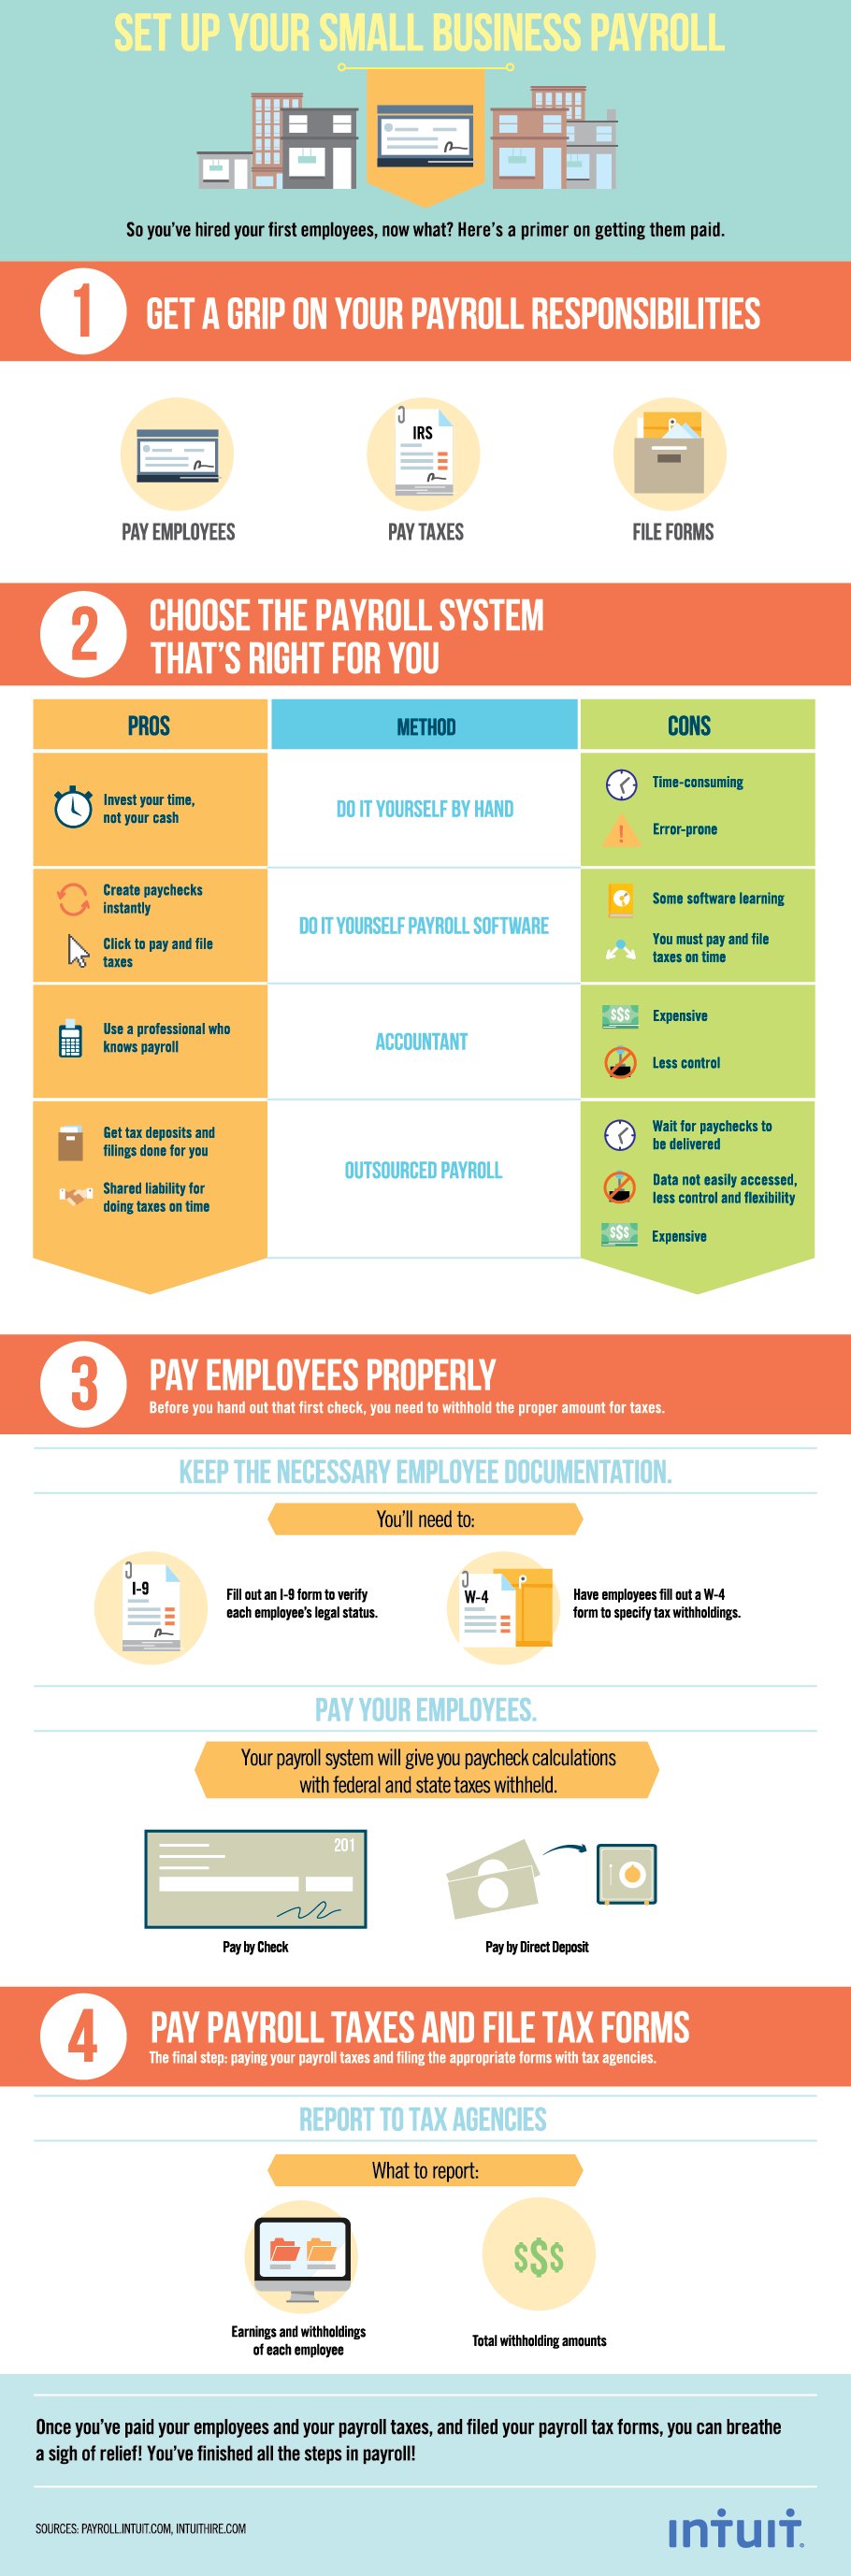 Check Out This Infographic On Setting Up Payroll For Small